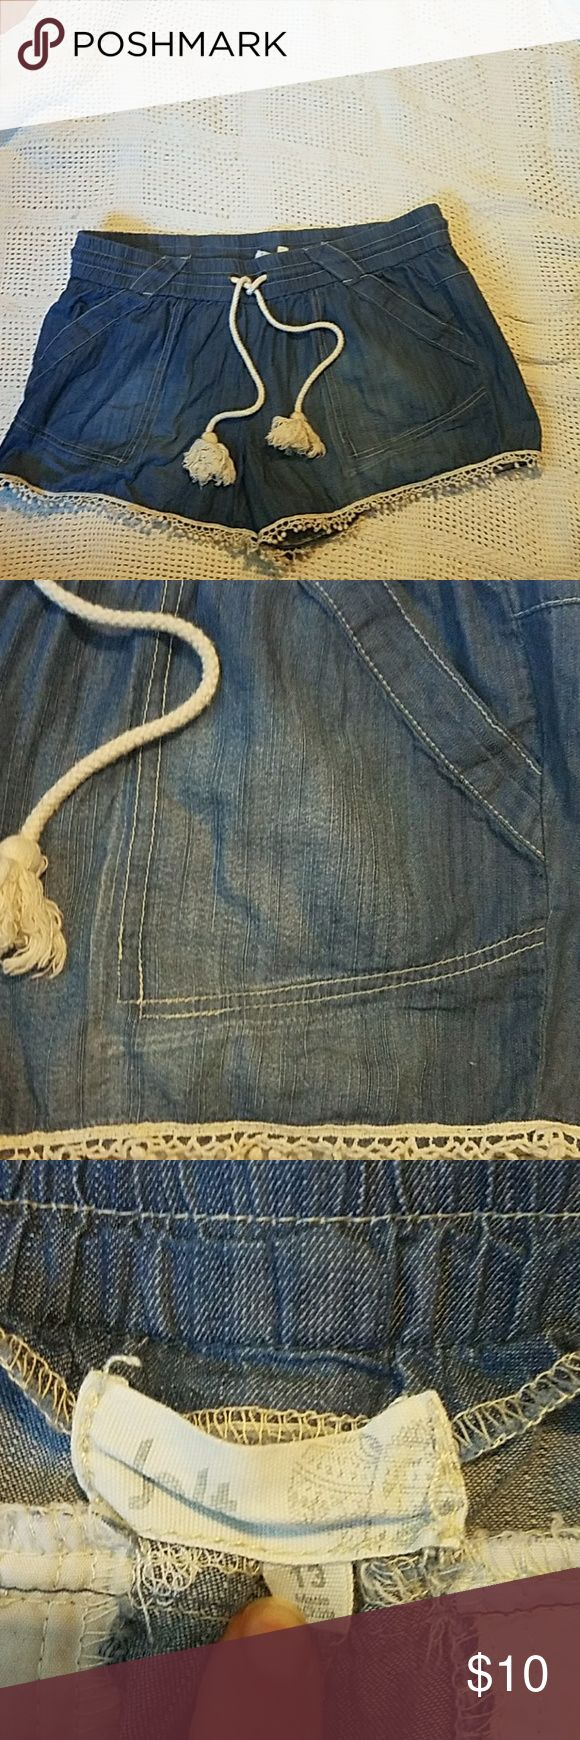 Jolt soft blue drawstring lace trim shorts These shorts have been worn but are in excellent condition. Jolt Shorts